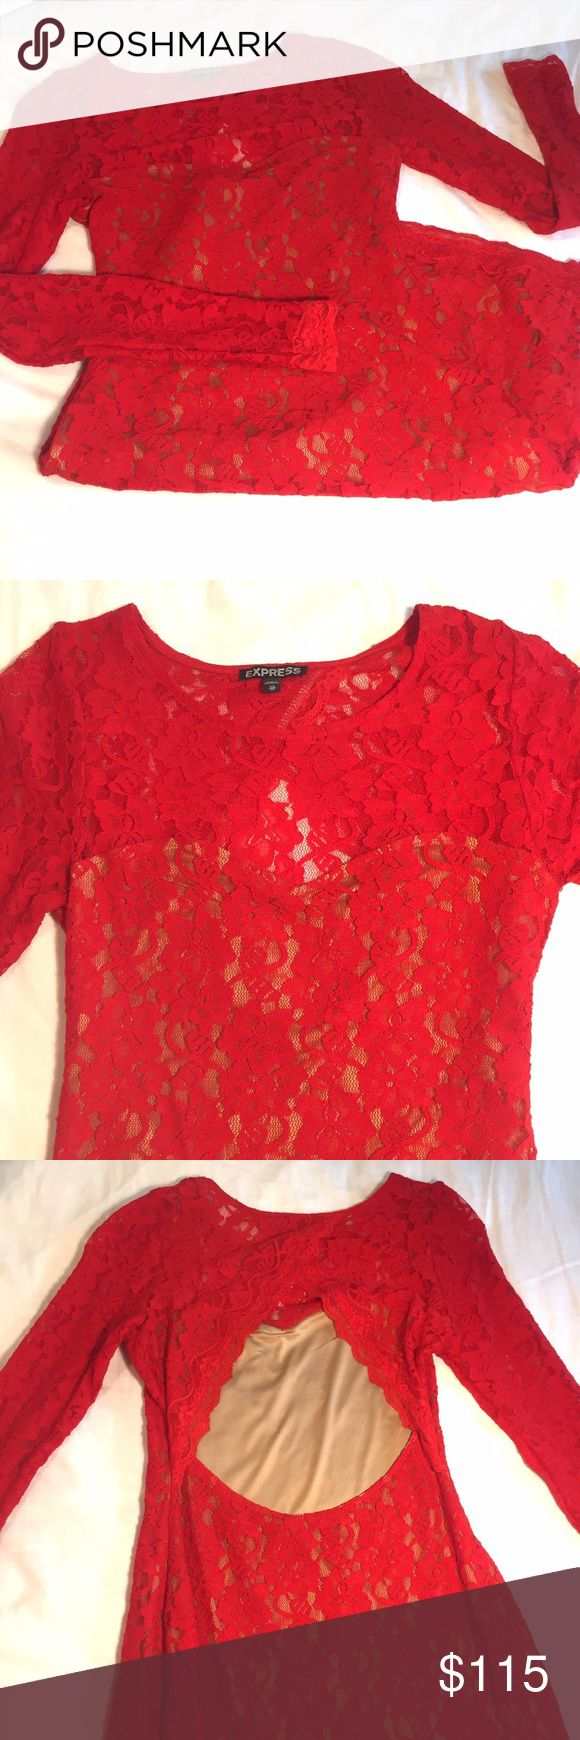 Sexy lace skin tight dress Beautiful red lace dress with long sleeves and back cut out. Fully lined with sweetheart bust. Size XS, runs large. Fits like a small. condition: lightly used. Express Dresses Long Sleeve